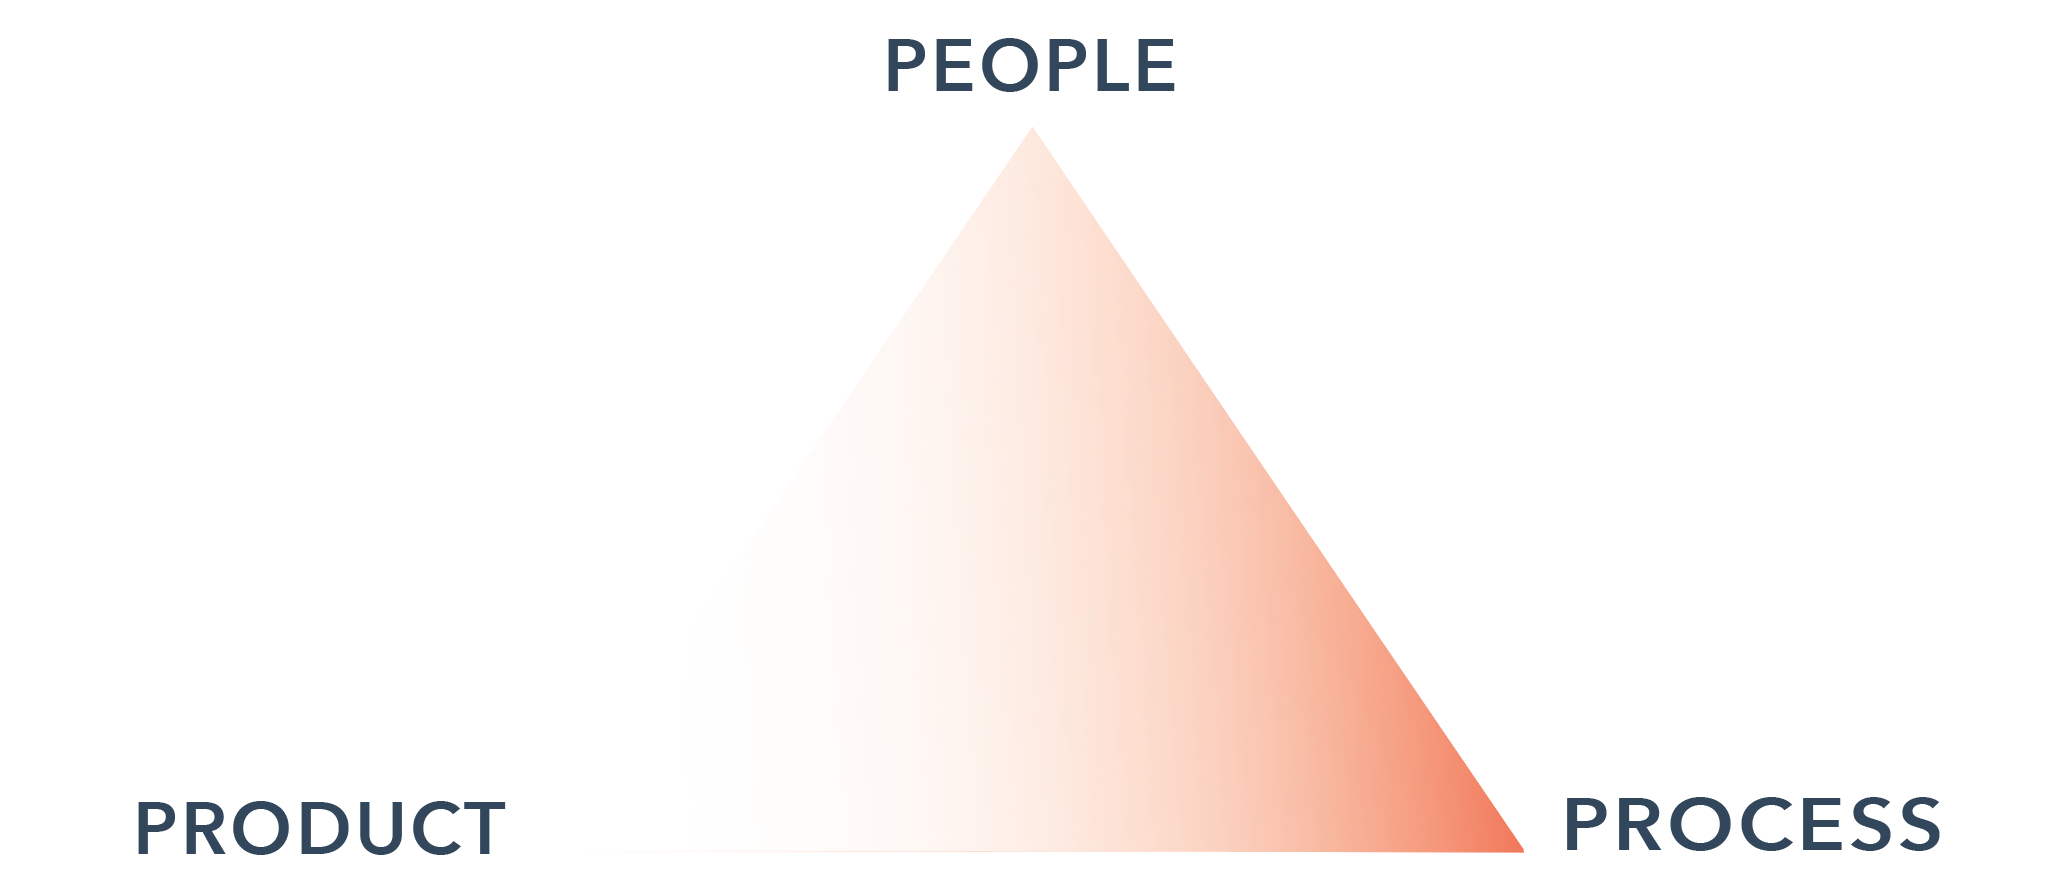 """Another triangle. We love the triangles in this post! The same labeling as the first image, except this time, the triangle is shaded inside, and the shading amplifies the connection between """"people"""" at the top point and """"process"""" at the bottom right point."""